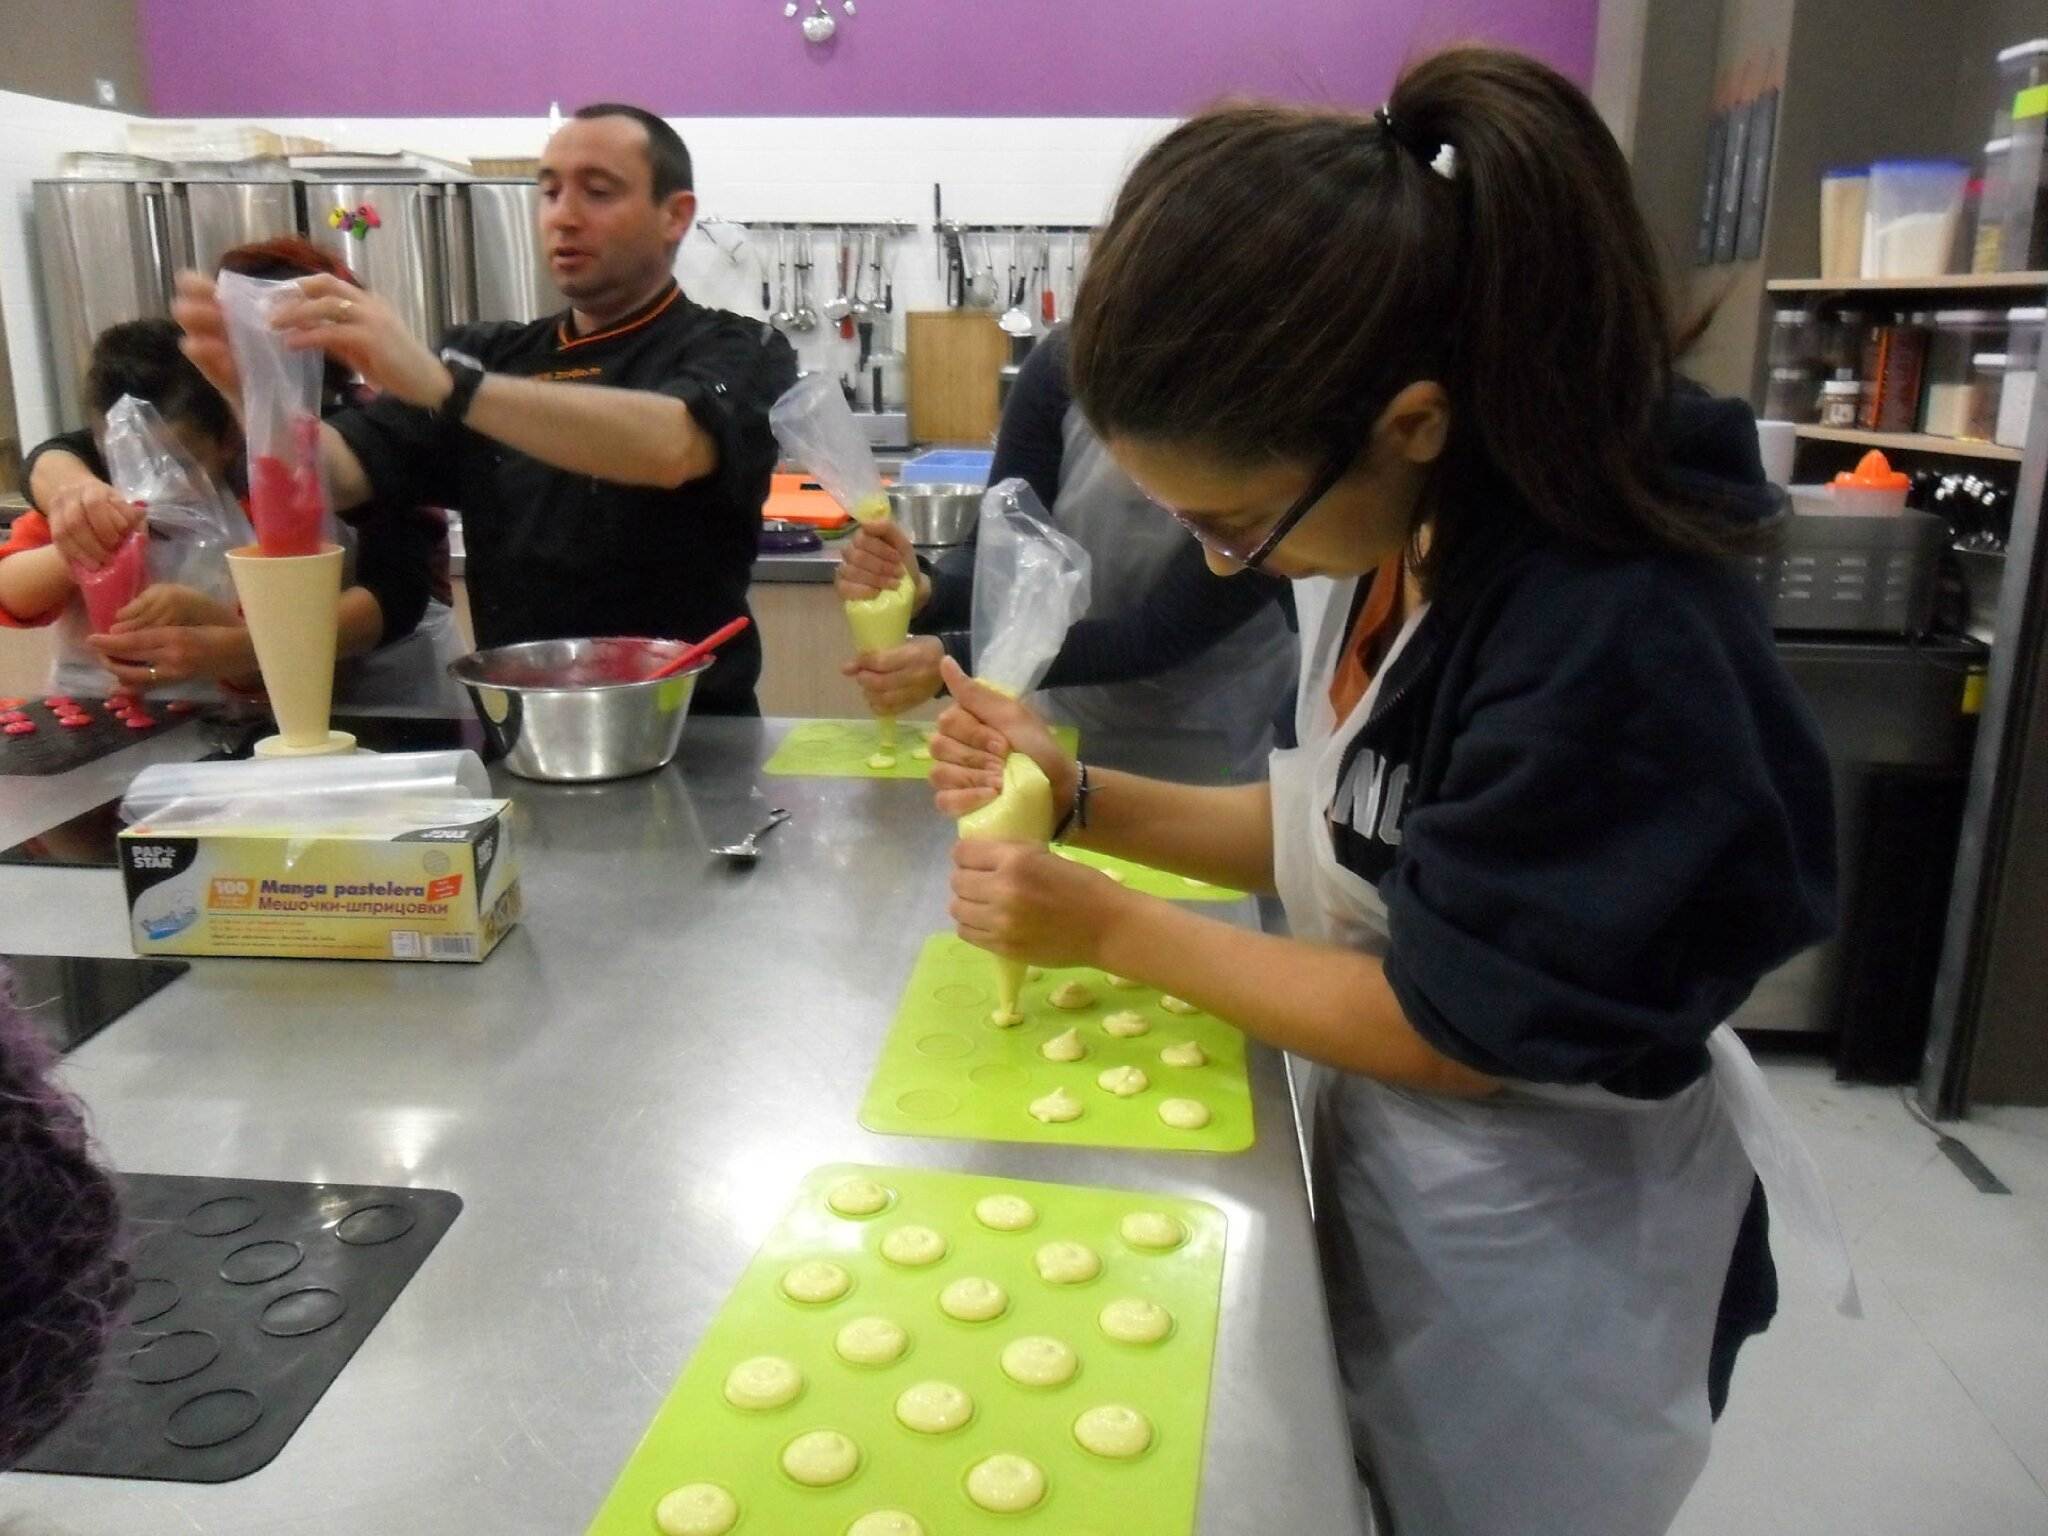 Cours couture zodio for Zodio cours cuisine